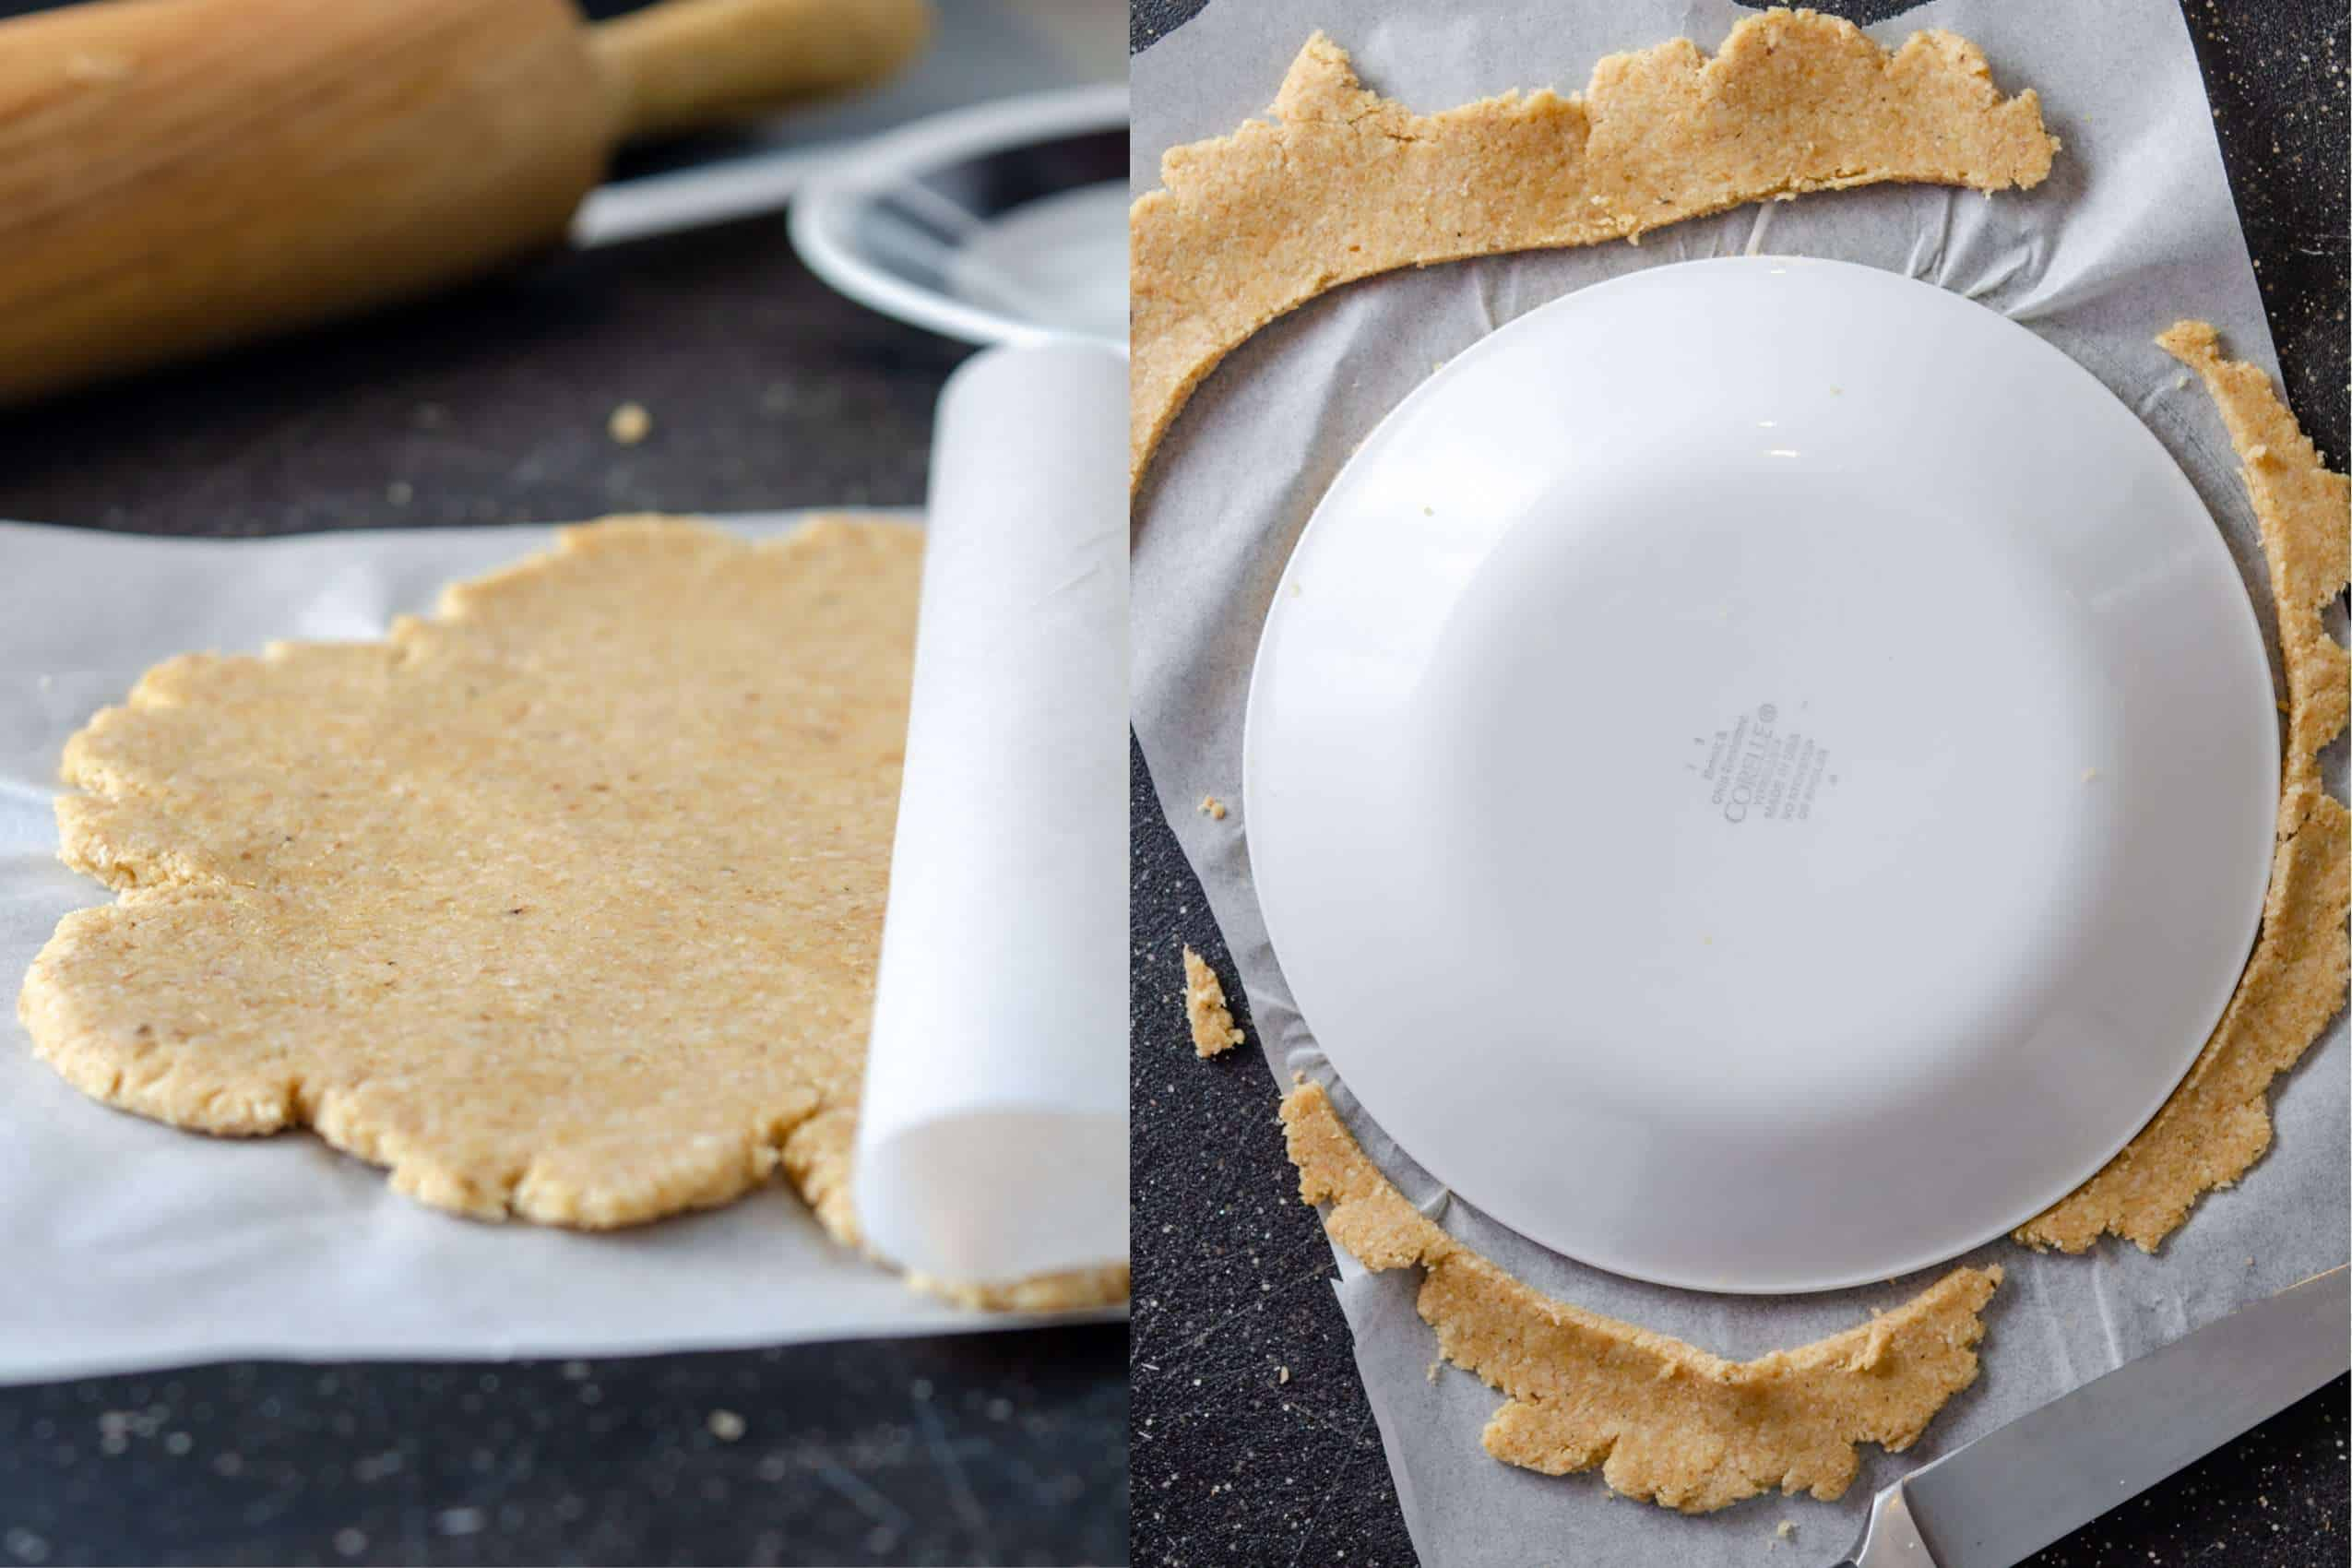 Directional image, how to form keto tortillas